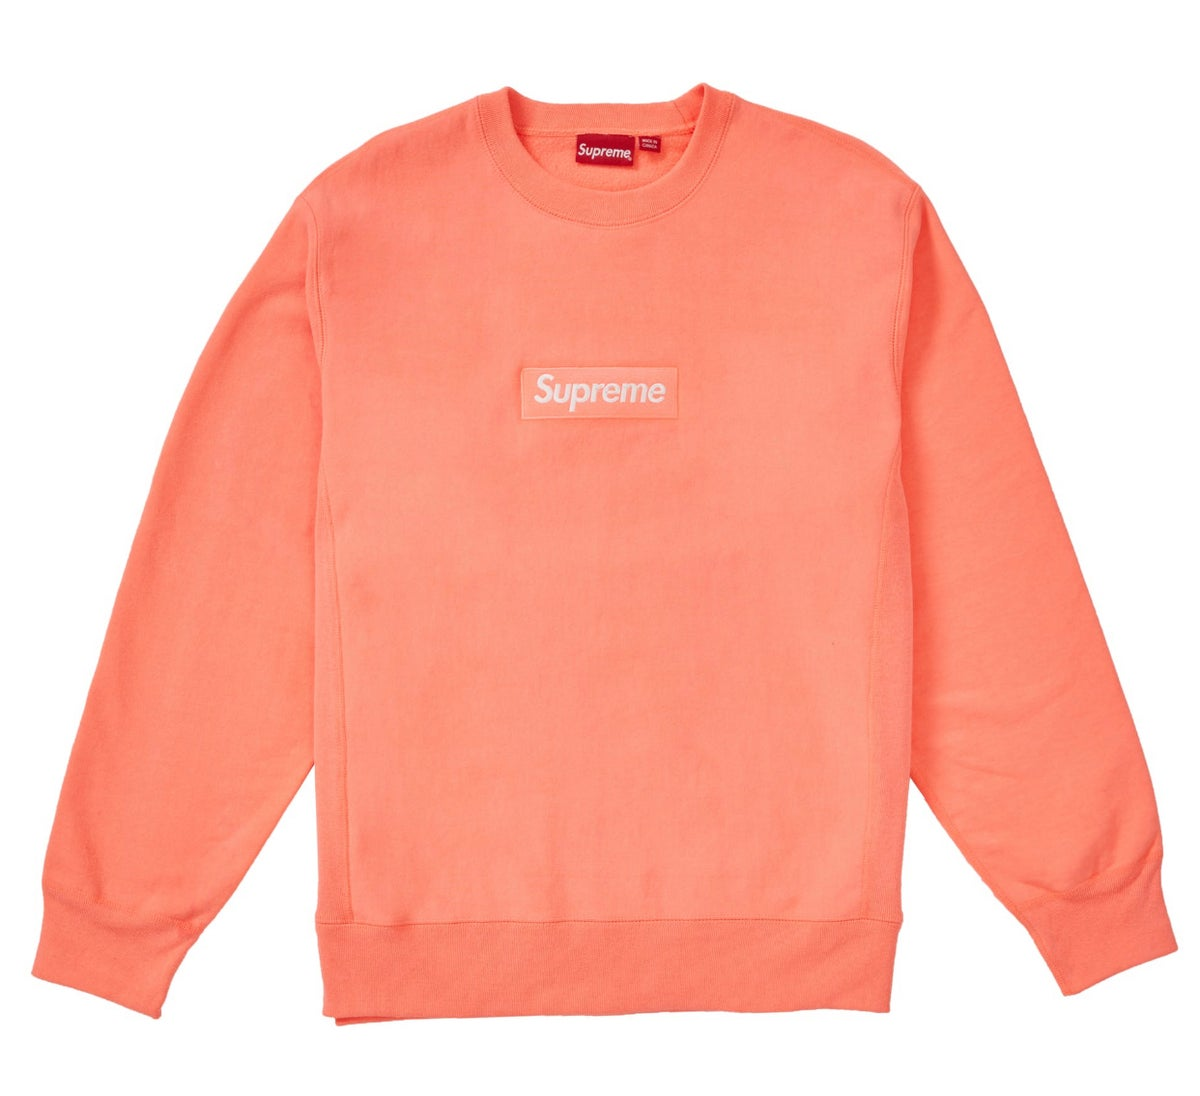 Image of Supreme Box Logo Crewneck FW18 Fluorecent Pink